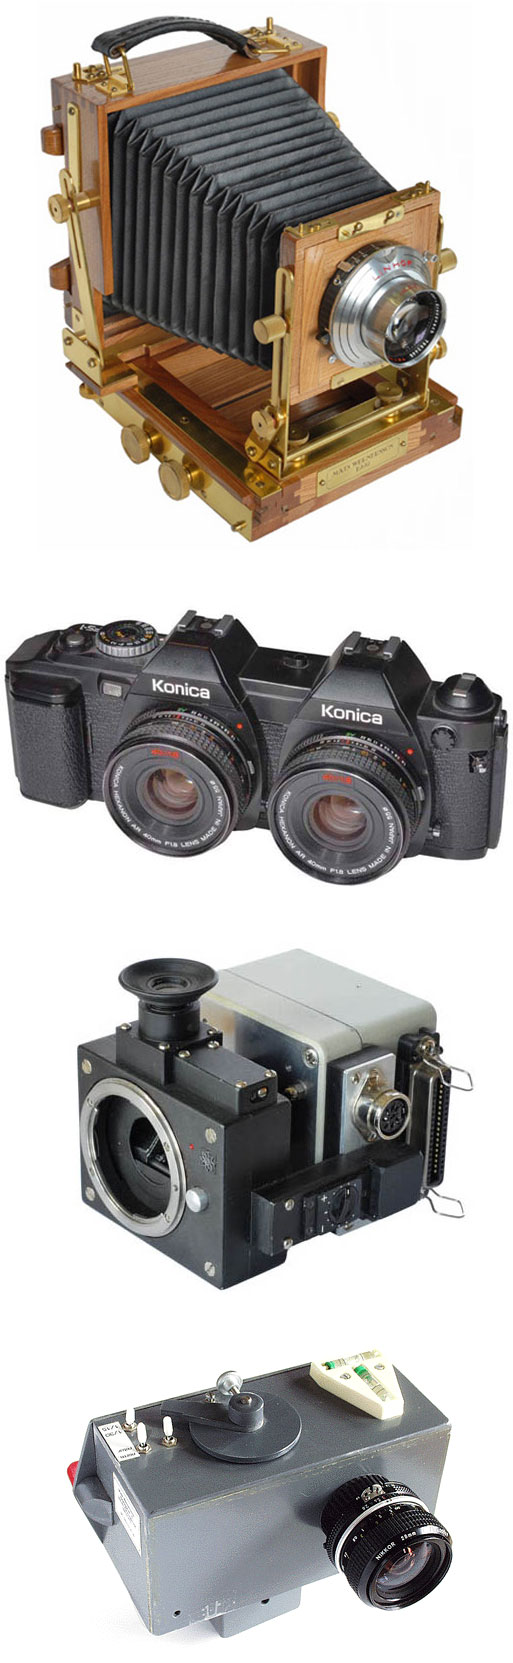 Handmade Cameras by Mats Wernersson